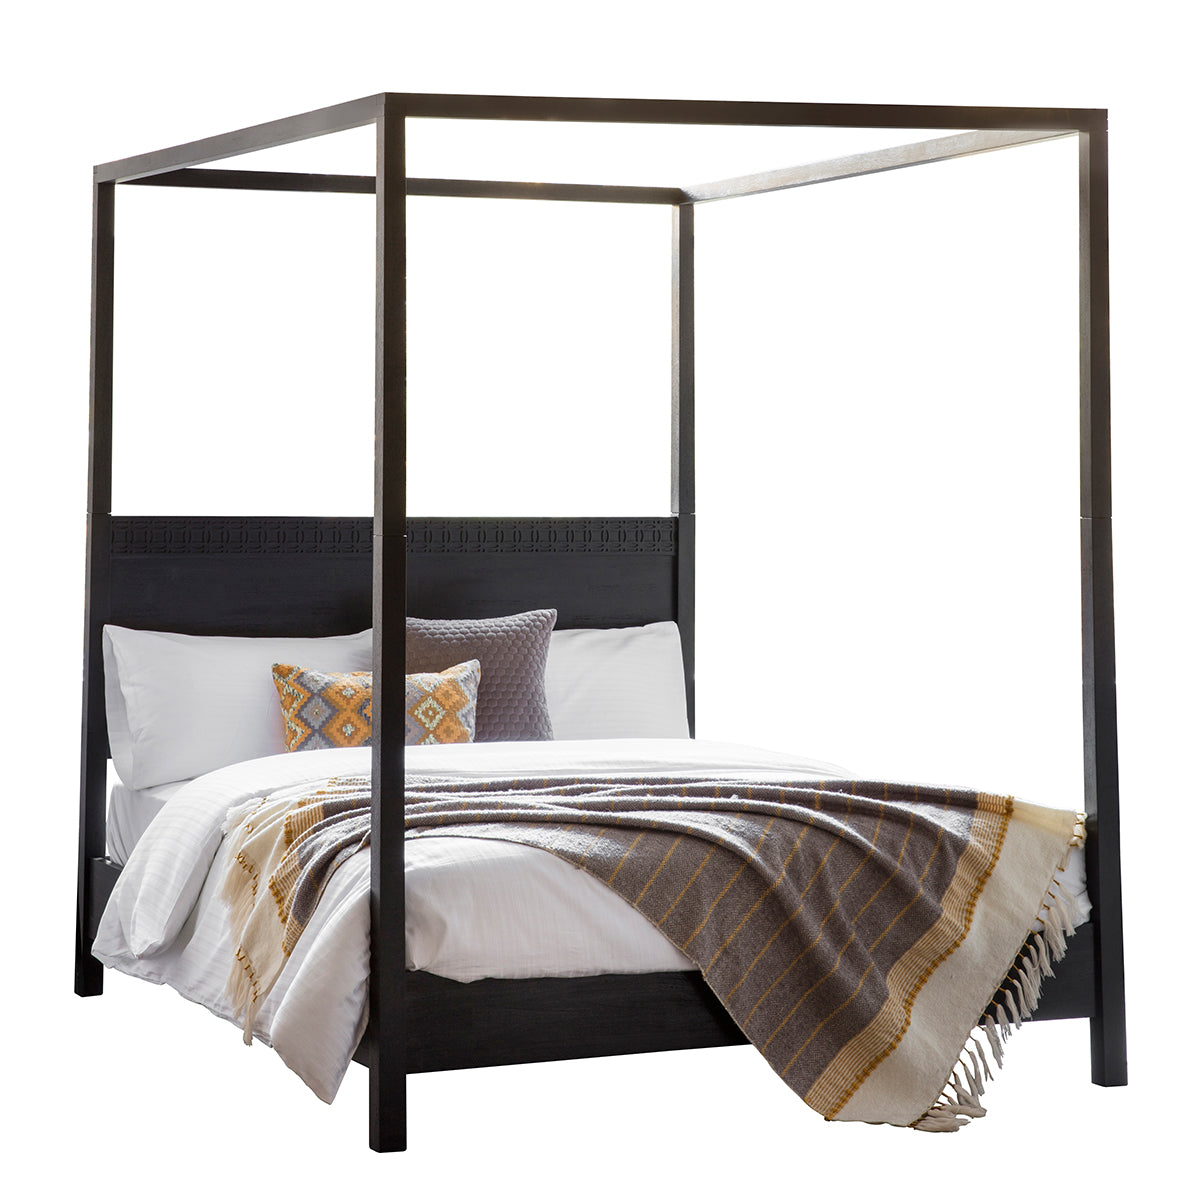 Greenwich 4 Poster King Size Bed in Dark Charcoal - Ezzo